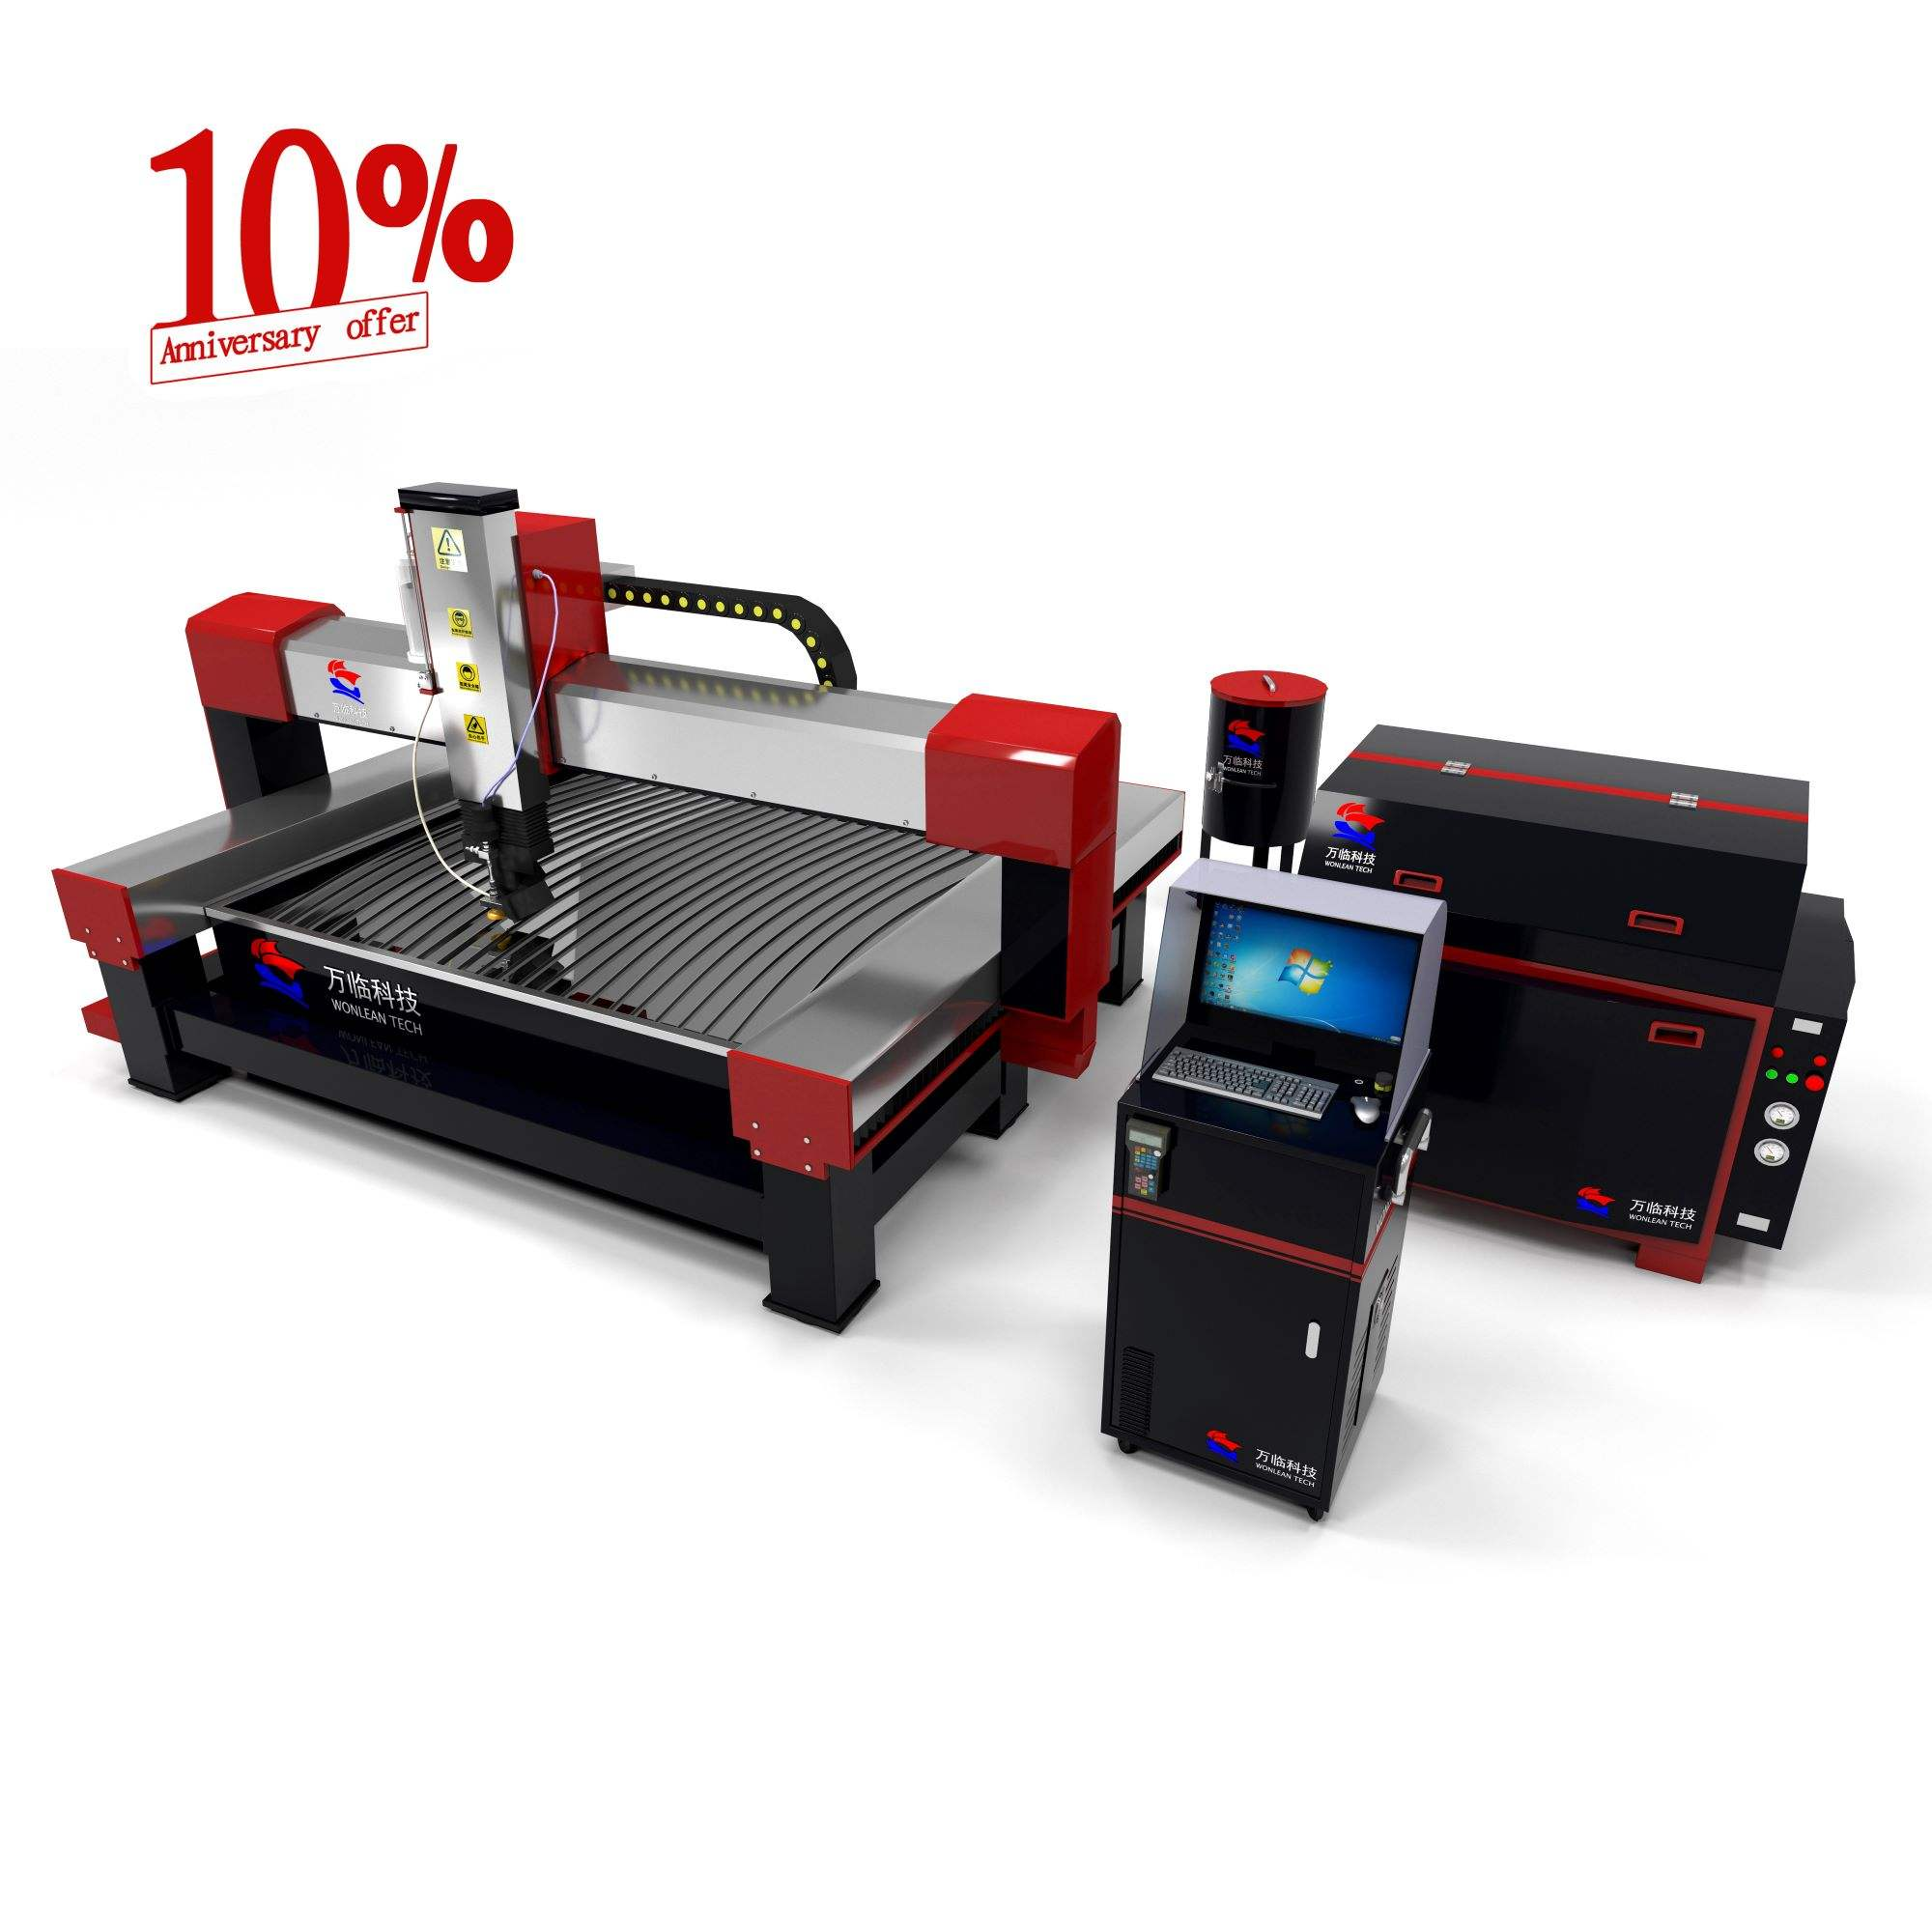 10th anniversary specials,the all series cnc metal processing waterjet machine price down 10%